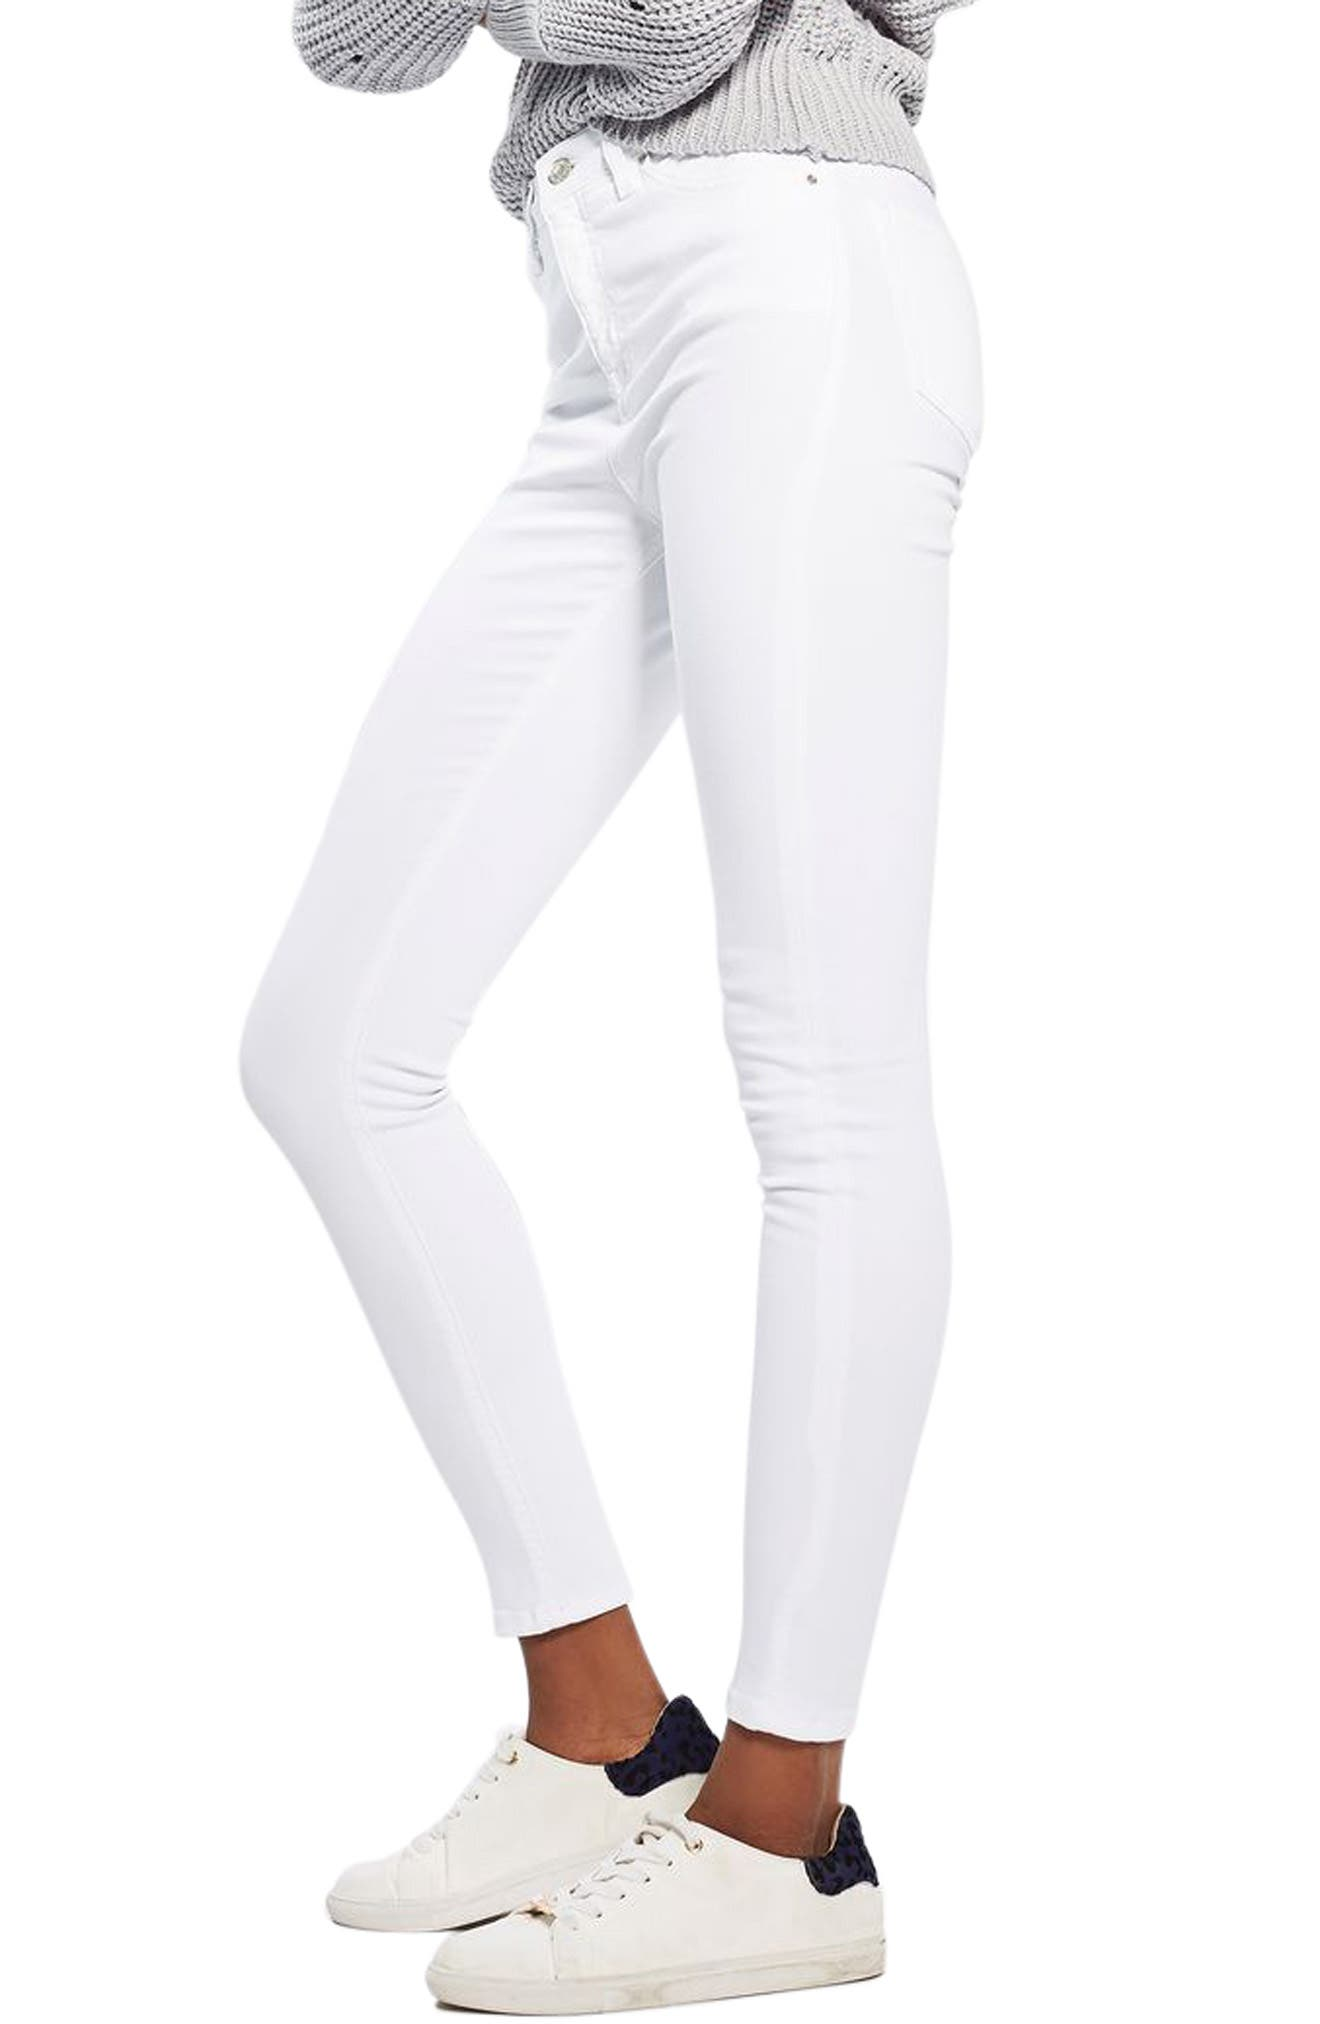 Alternate Image 1 Selected - Topshop Jamie High Waist Ankle Skinny Jeans (Regular & Petite)